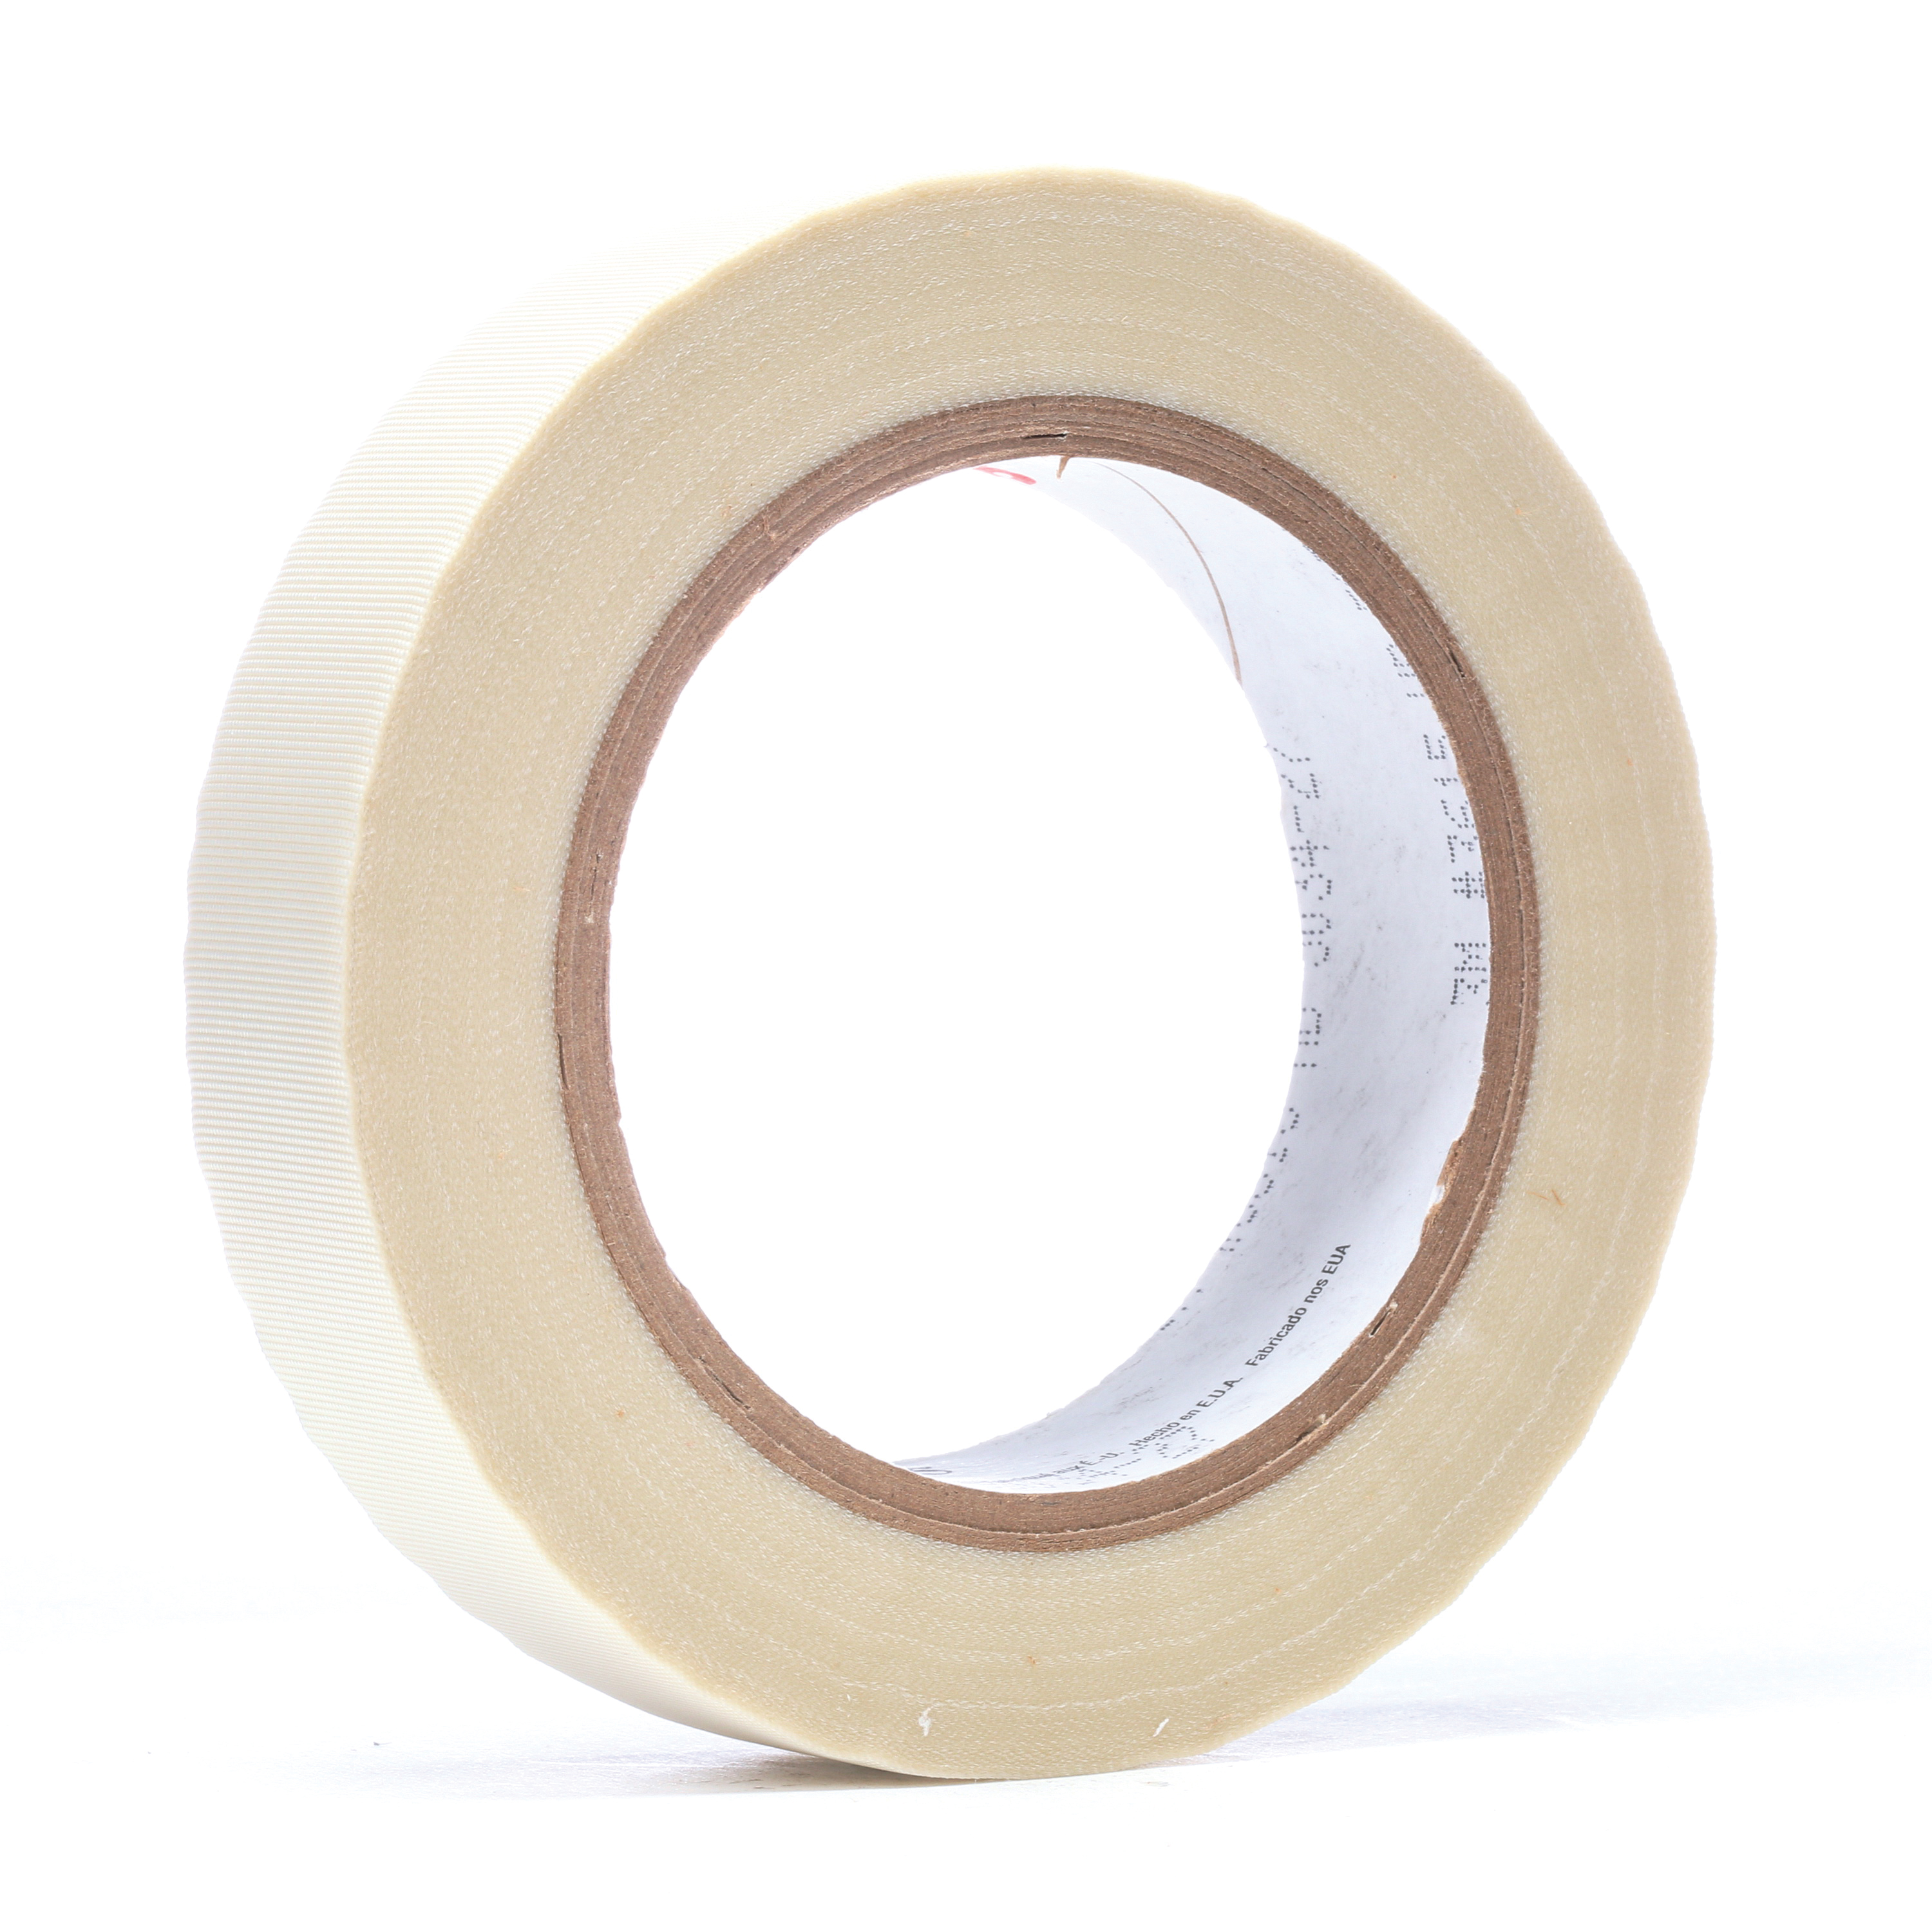 3M™ 021200-48235 Thick General Purpose Tape, 36 yd L x 1 in W, 7 mil THK, Silicone Adhesive, Glass Cloth Backing, White